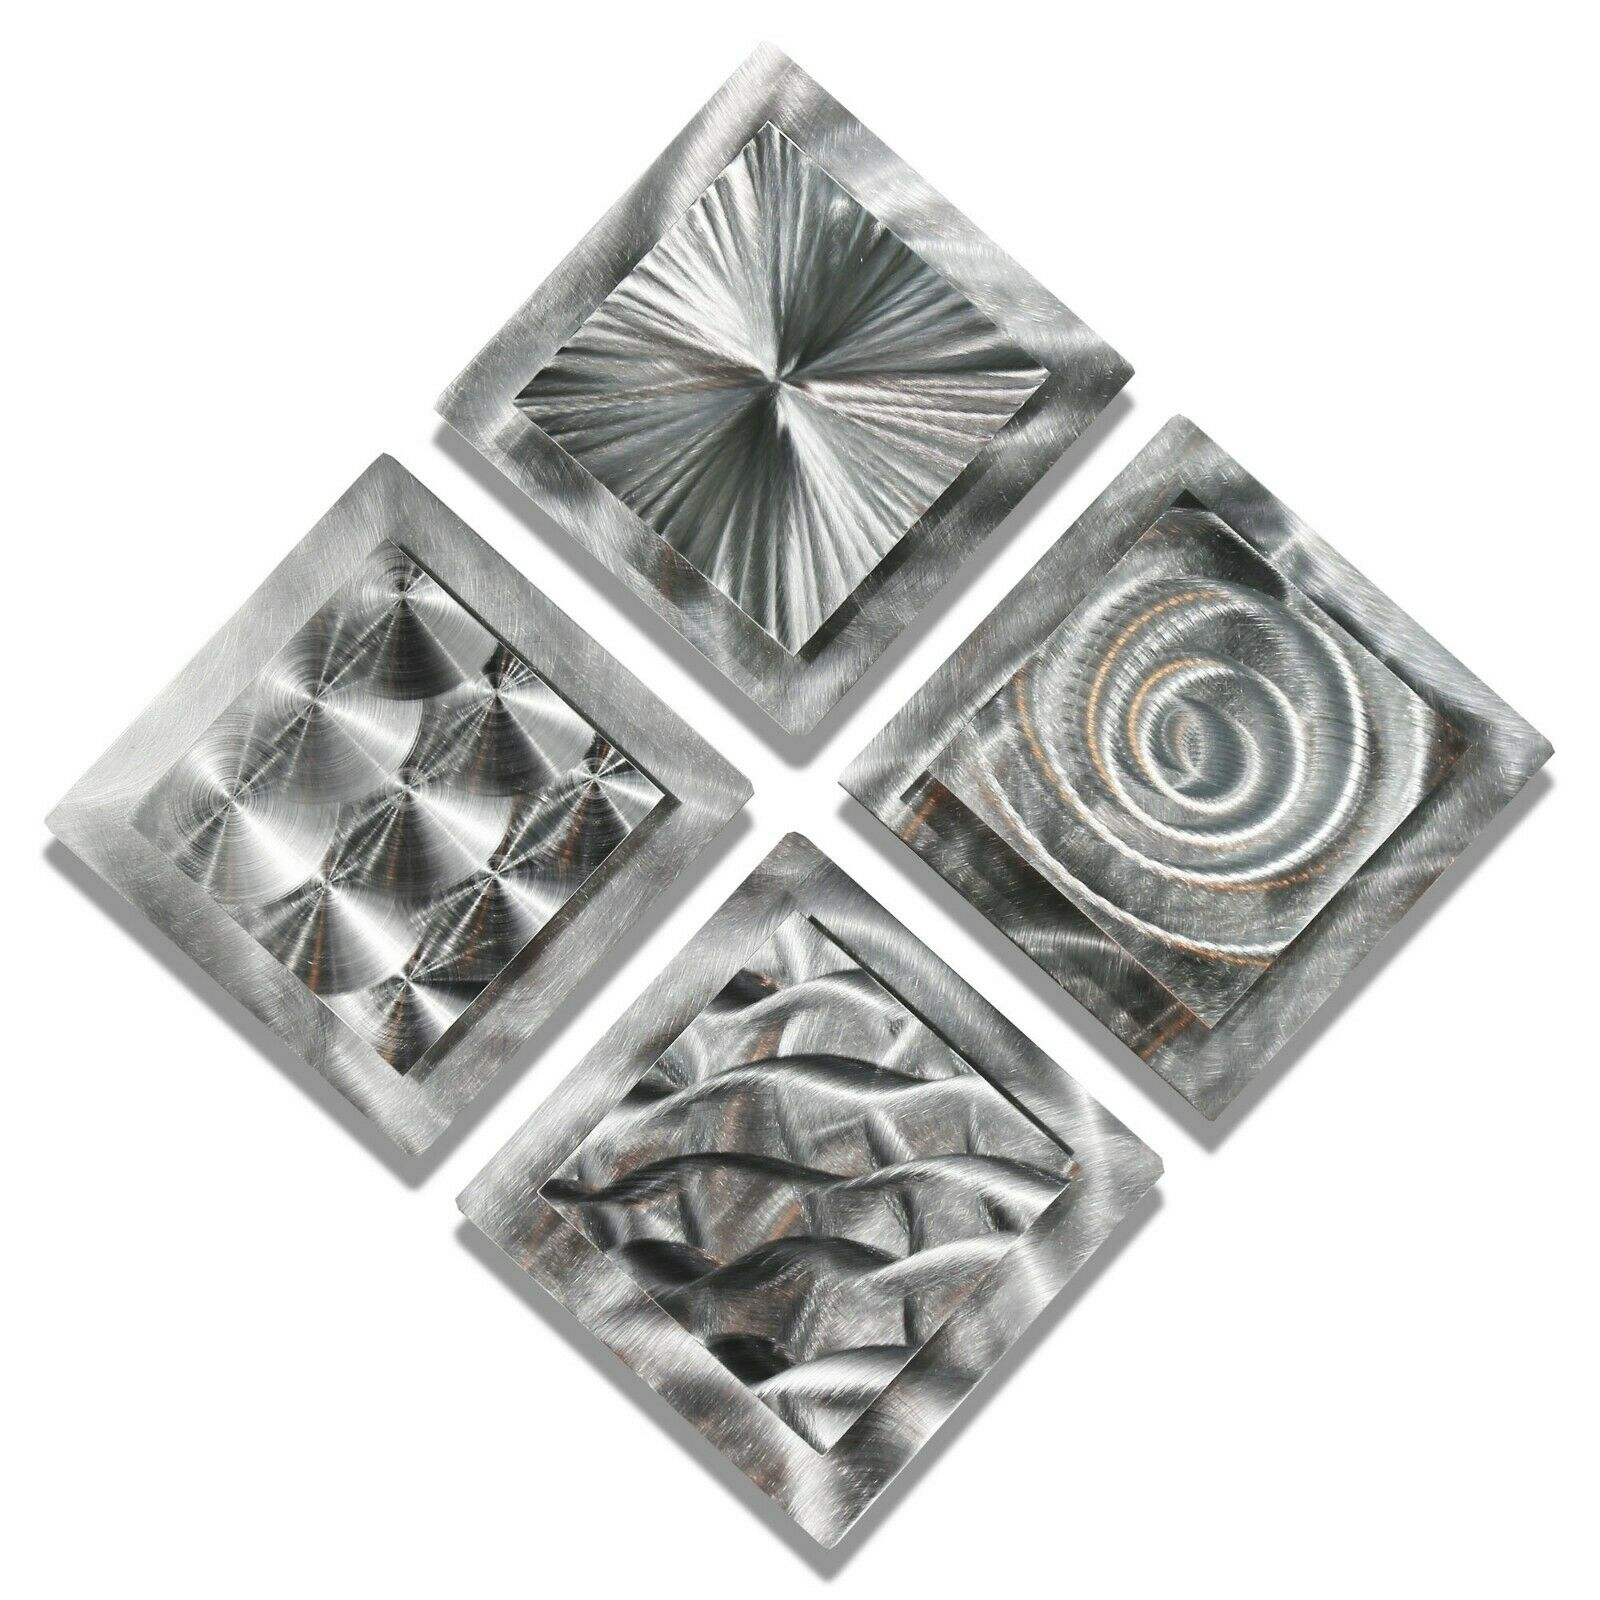 MODERN ABSTRACT SILVER Metal Wall Art Original Home Decor Sculptures ...